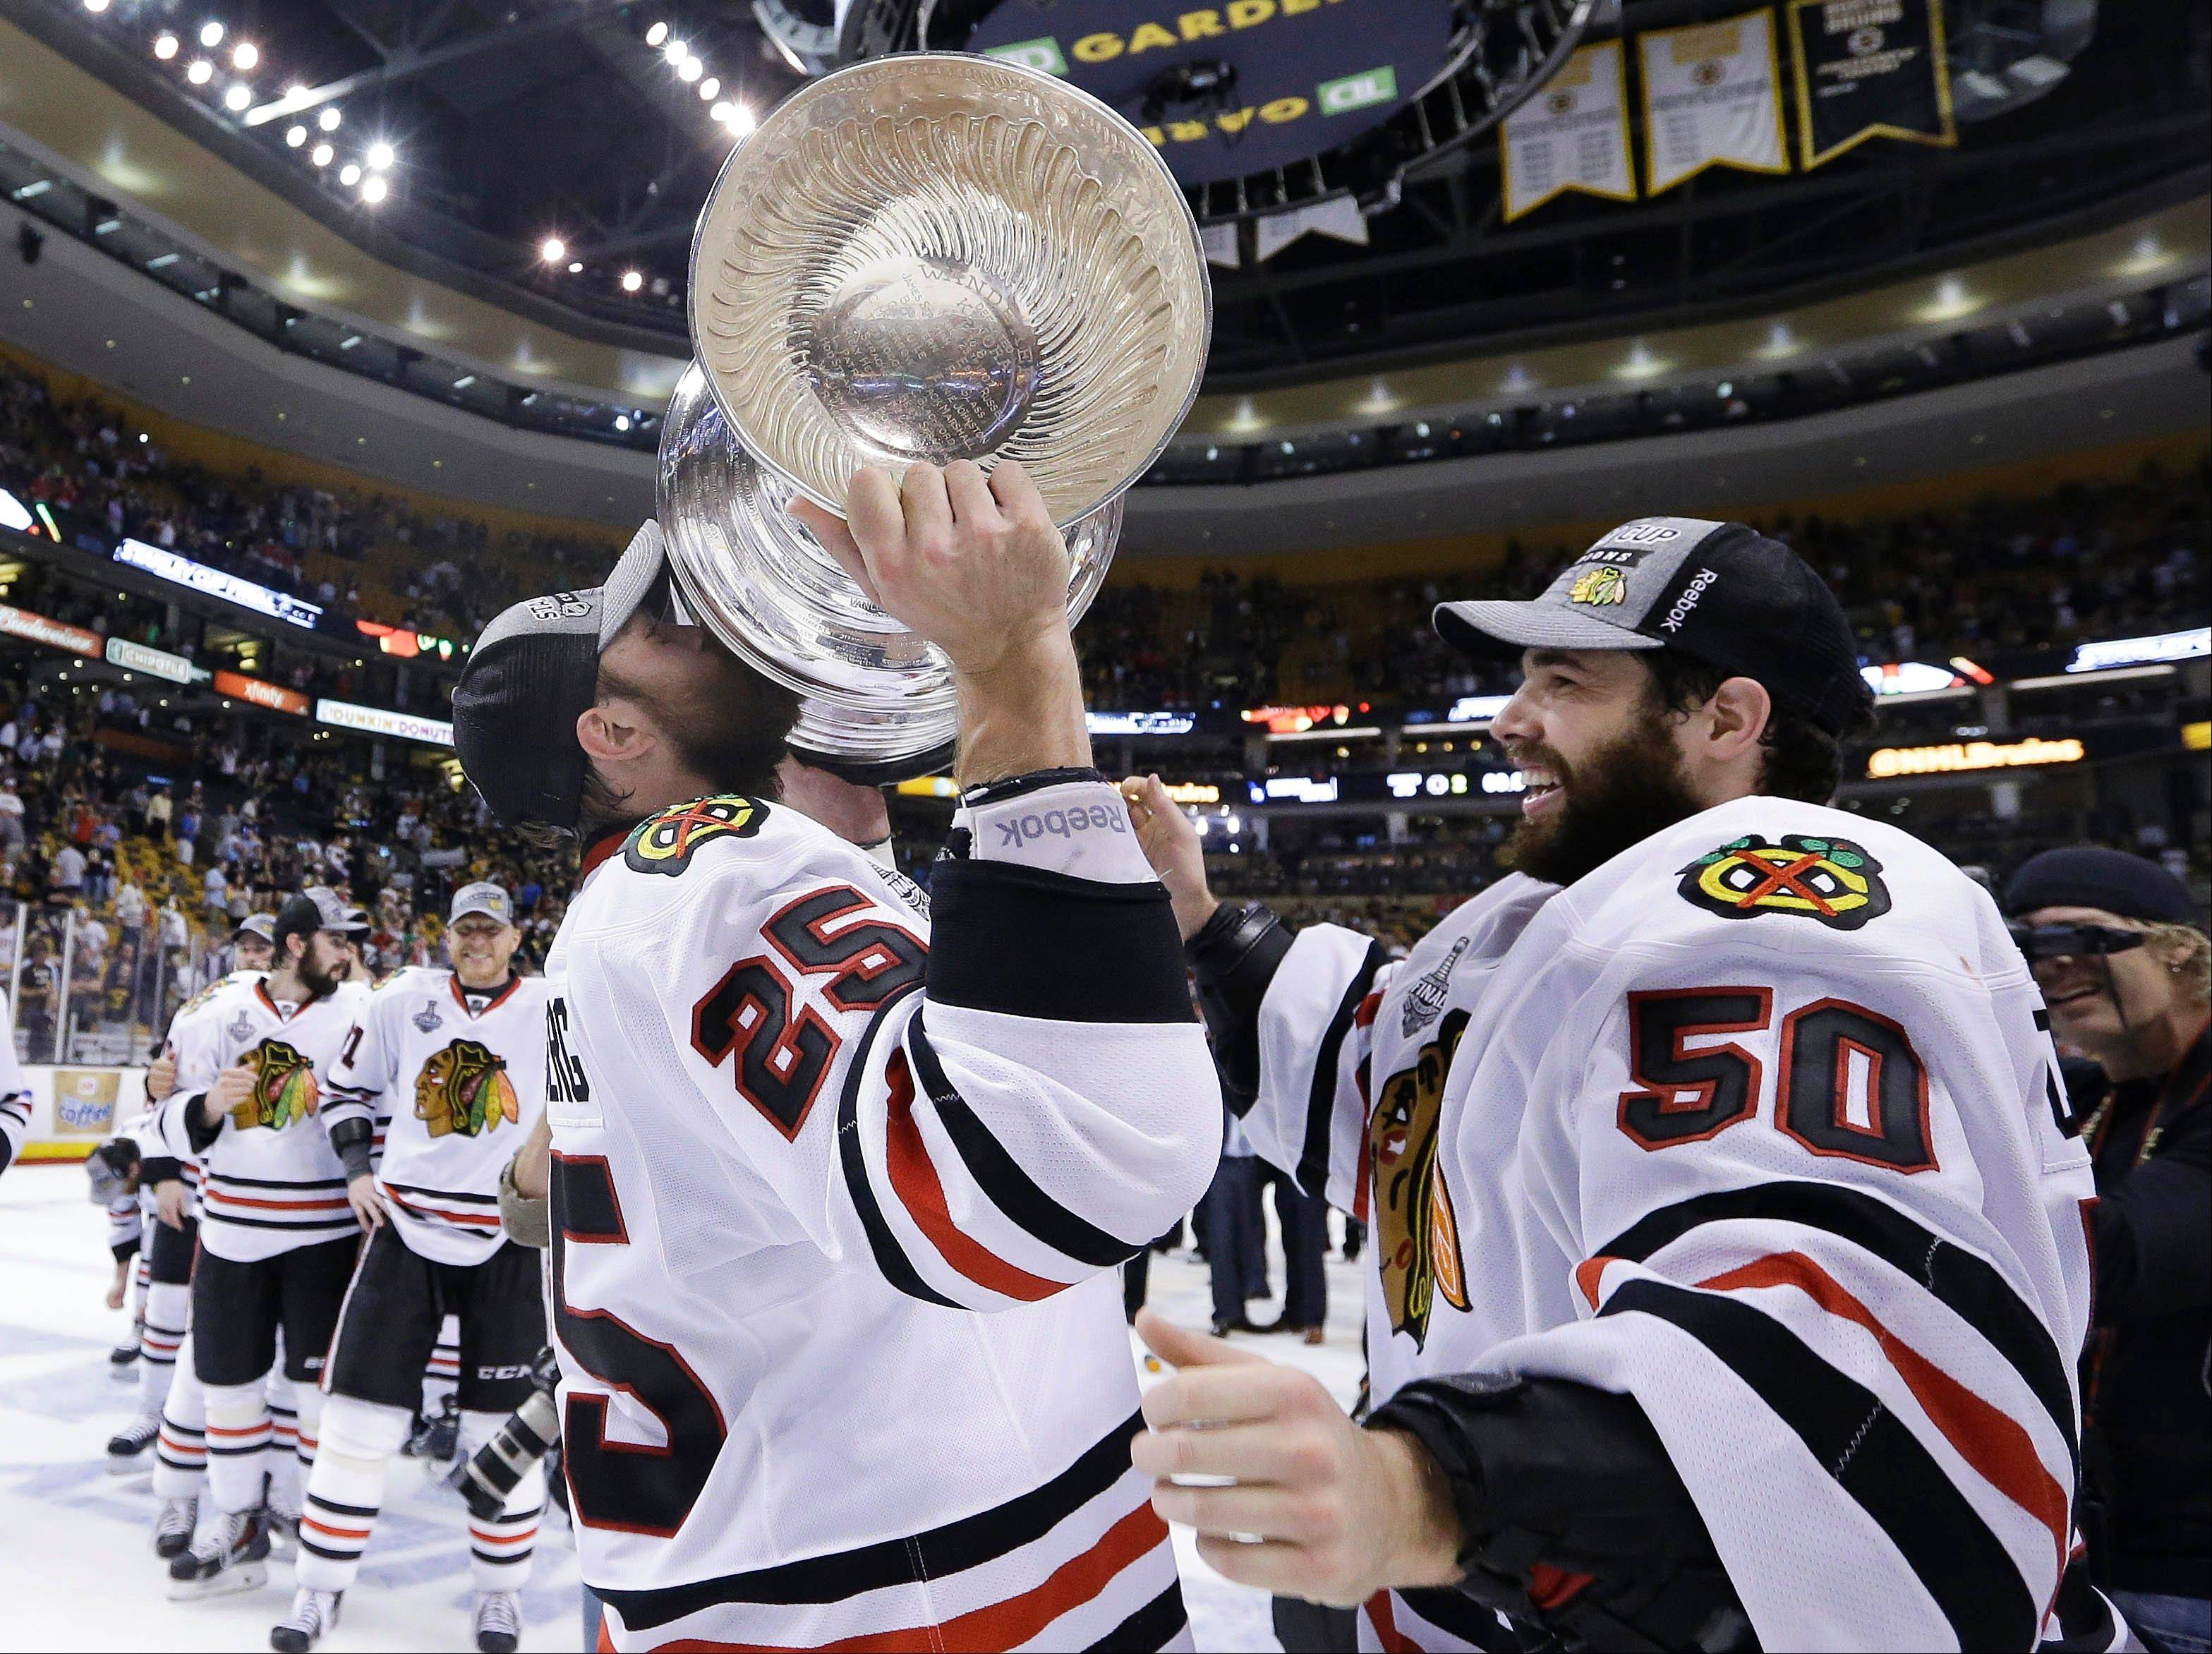 Blackhawks left wing Viktor Stalberg hoists the Stanley Cup alongside goalie Corey Crawford after the Blackhawks beat the Boston Bruins 3-2 in Game 6 of the NHL Stanley Cup Final Monday in Boston.